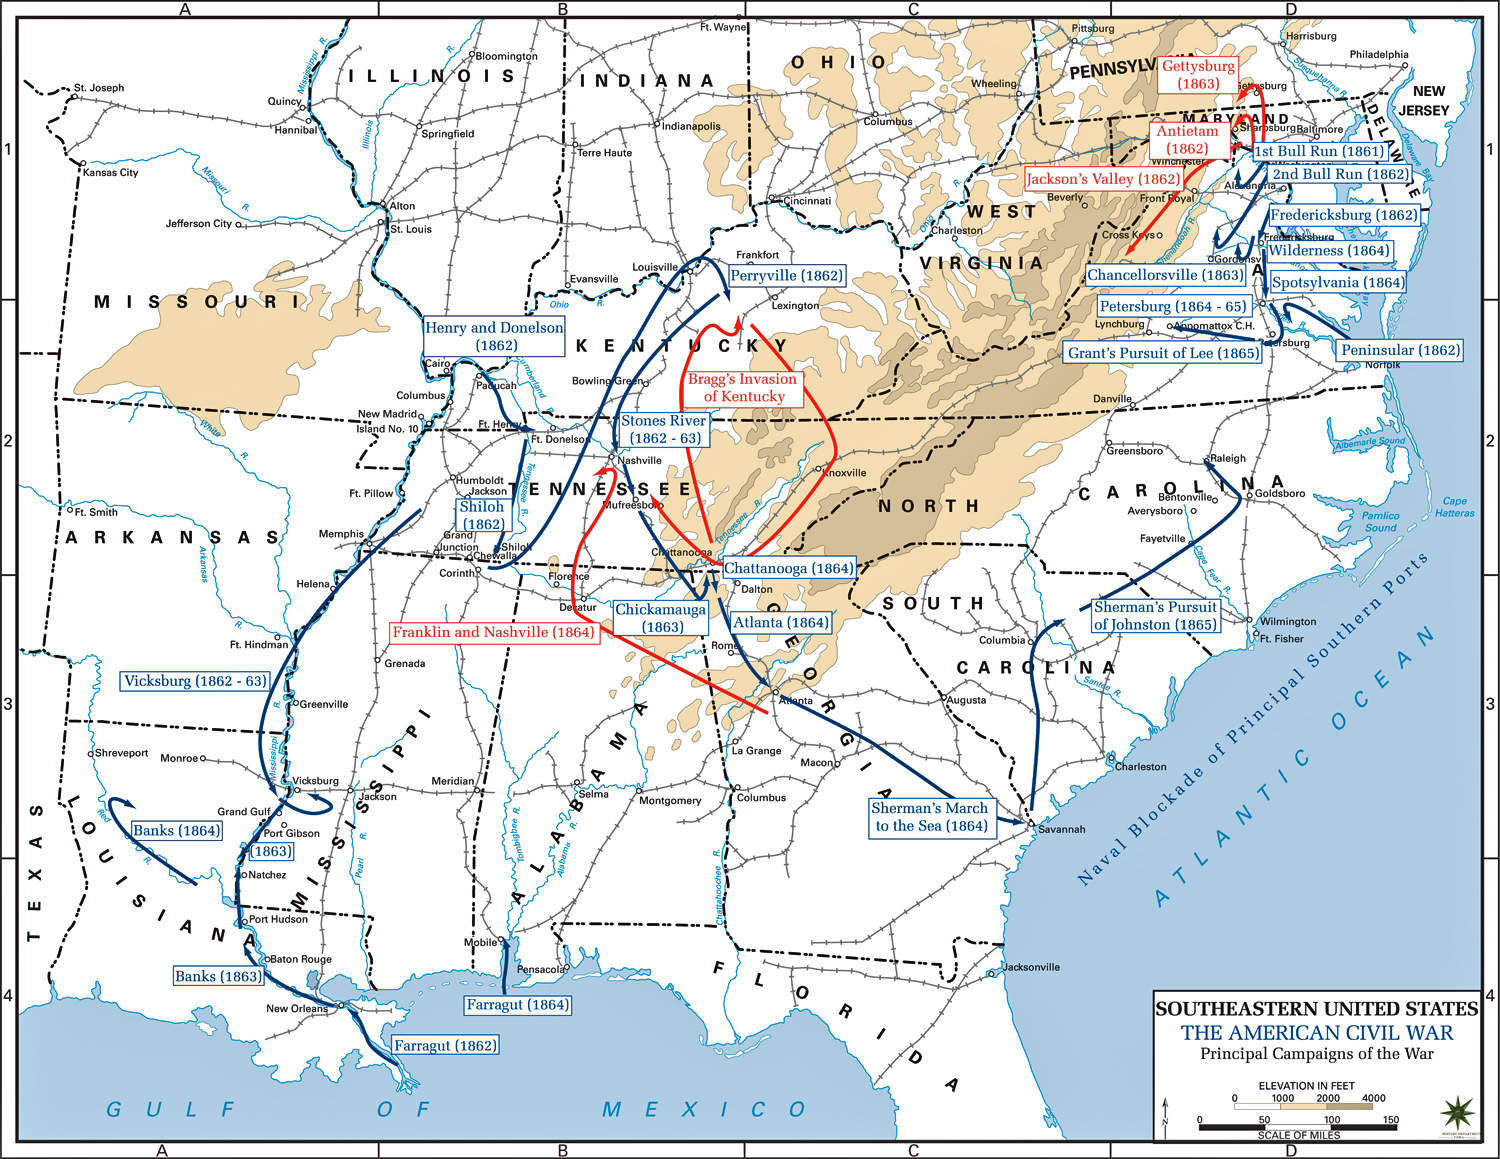 Map Of The American Civil War Prinl Campaigns 1861 1865